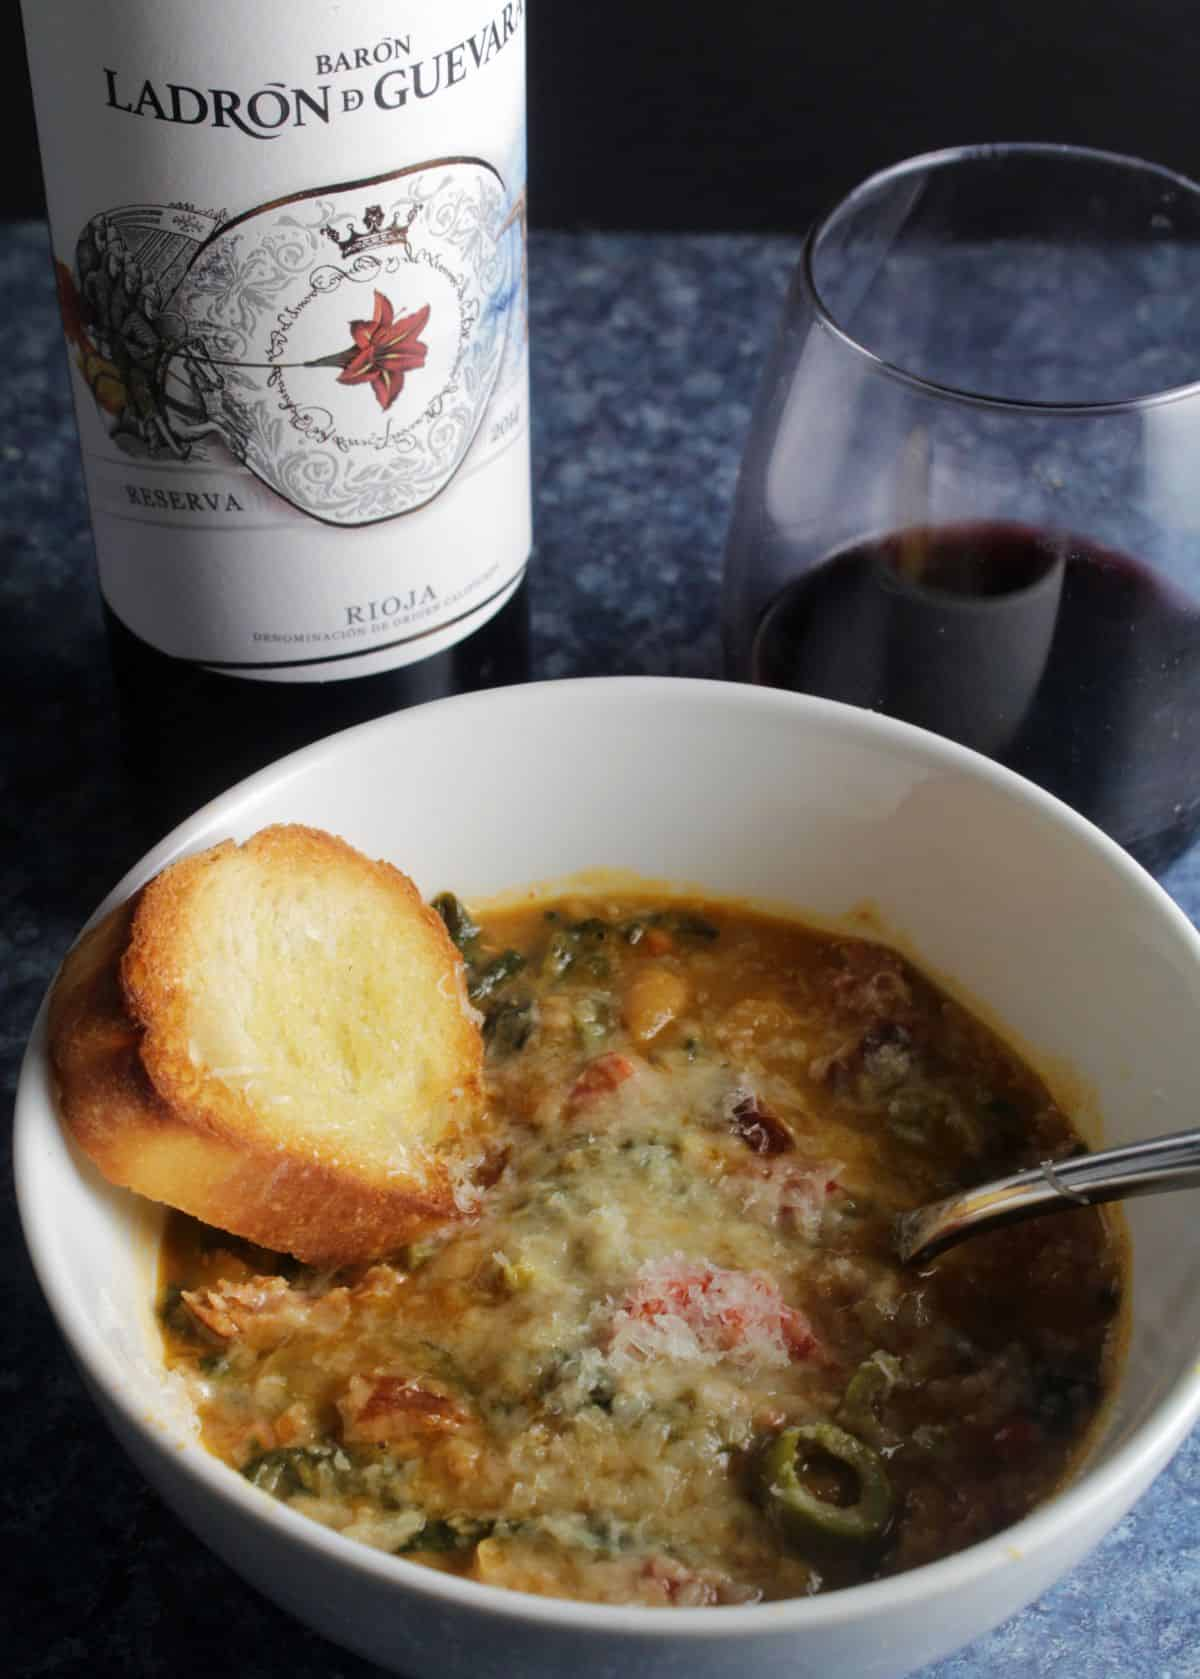 white bean stew in a white bowl served with garlic bread and a glass of Rioja wine.